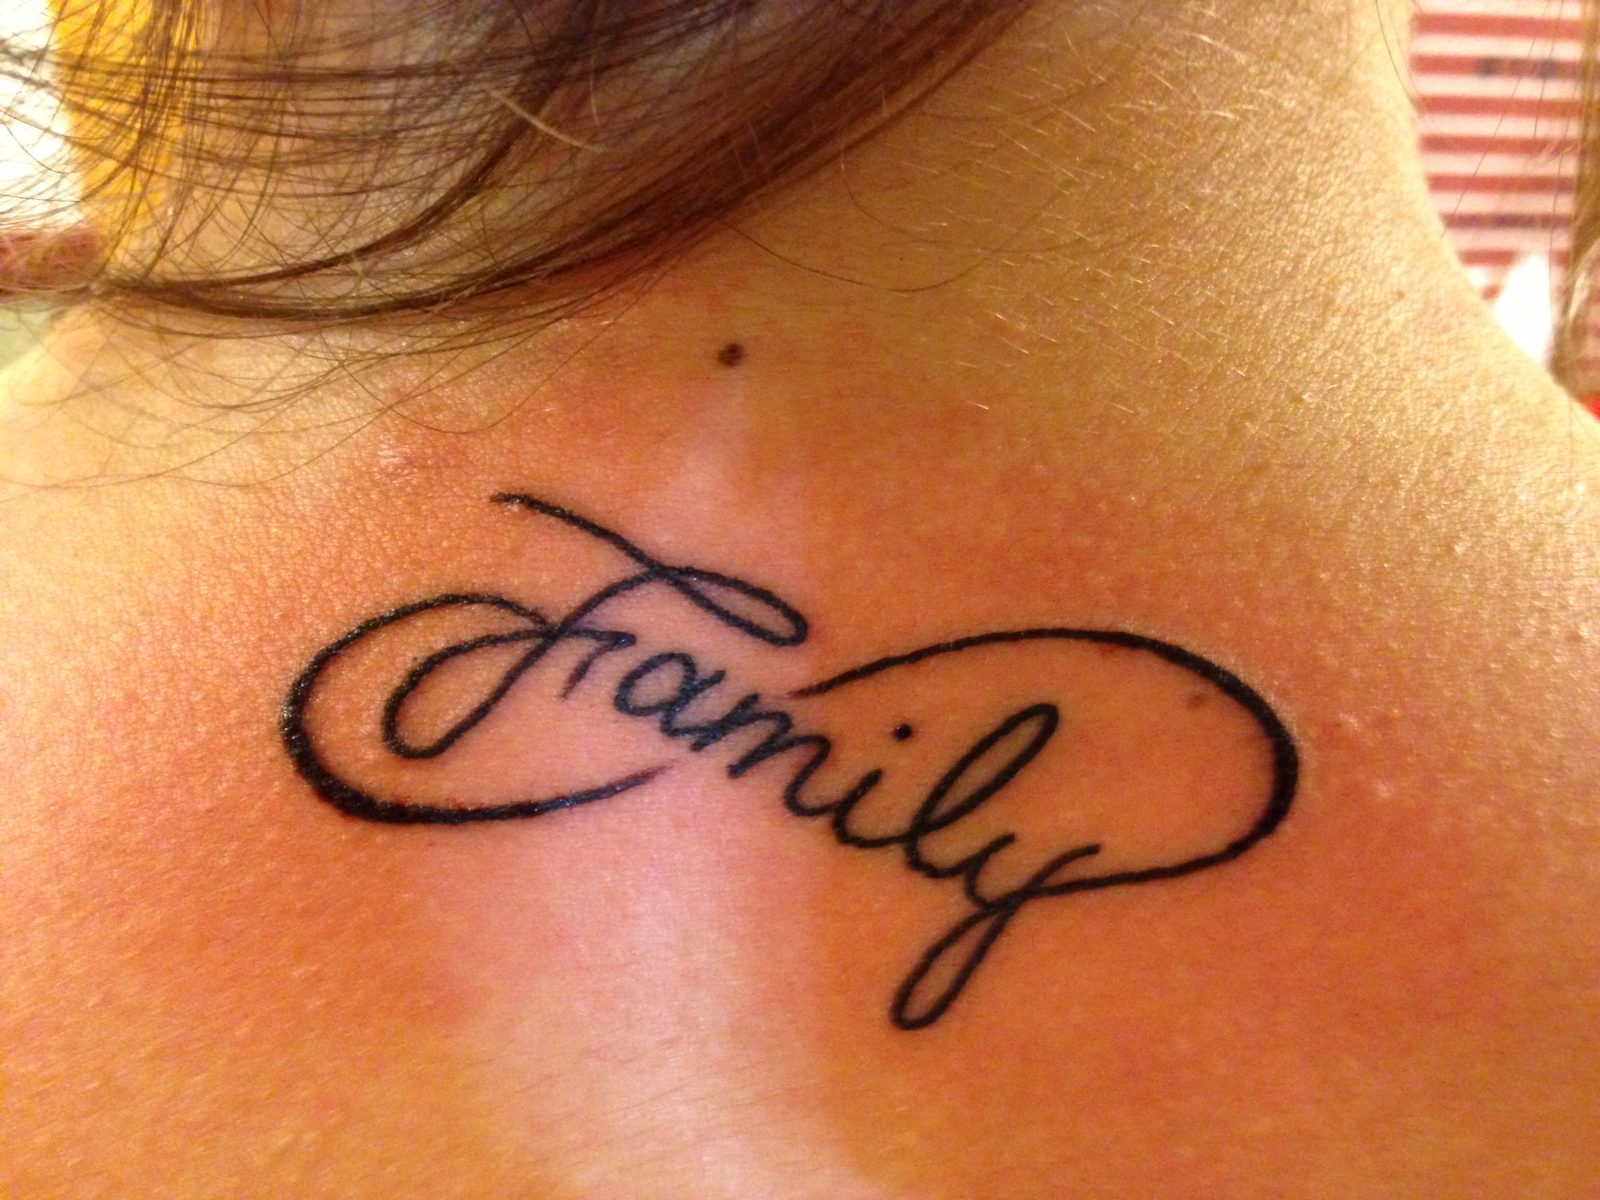 50 meaningful tattoo ideas art and design - Family Tattoos Designs Ideas And Meaning Tattoo Design Ideas For Family 50 Meaningful Tattoo Ideas Art And Design Tattoo Design Ideas For Family Images